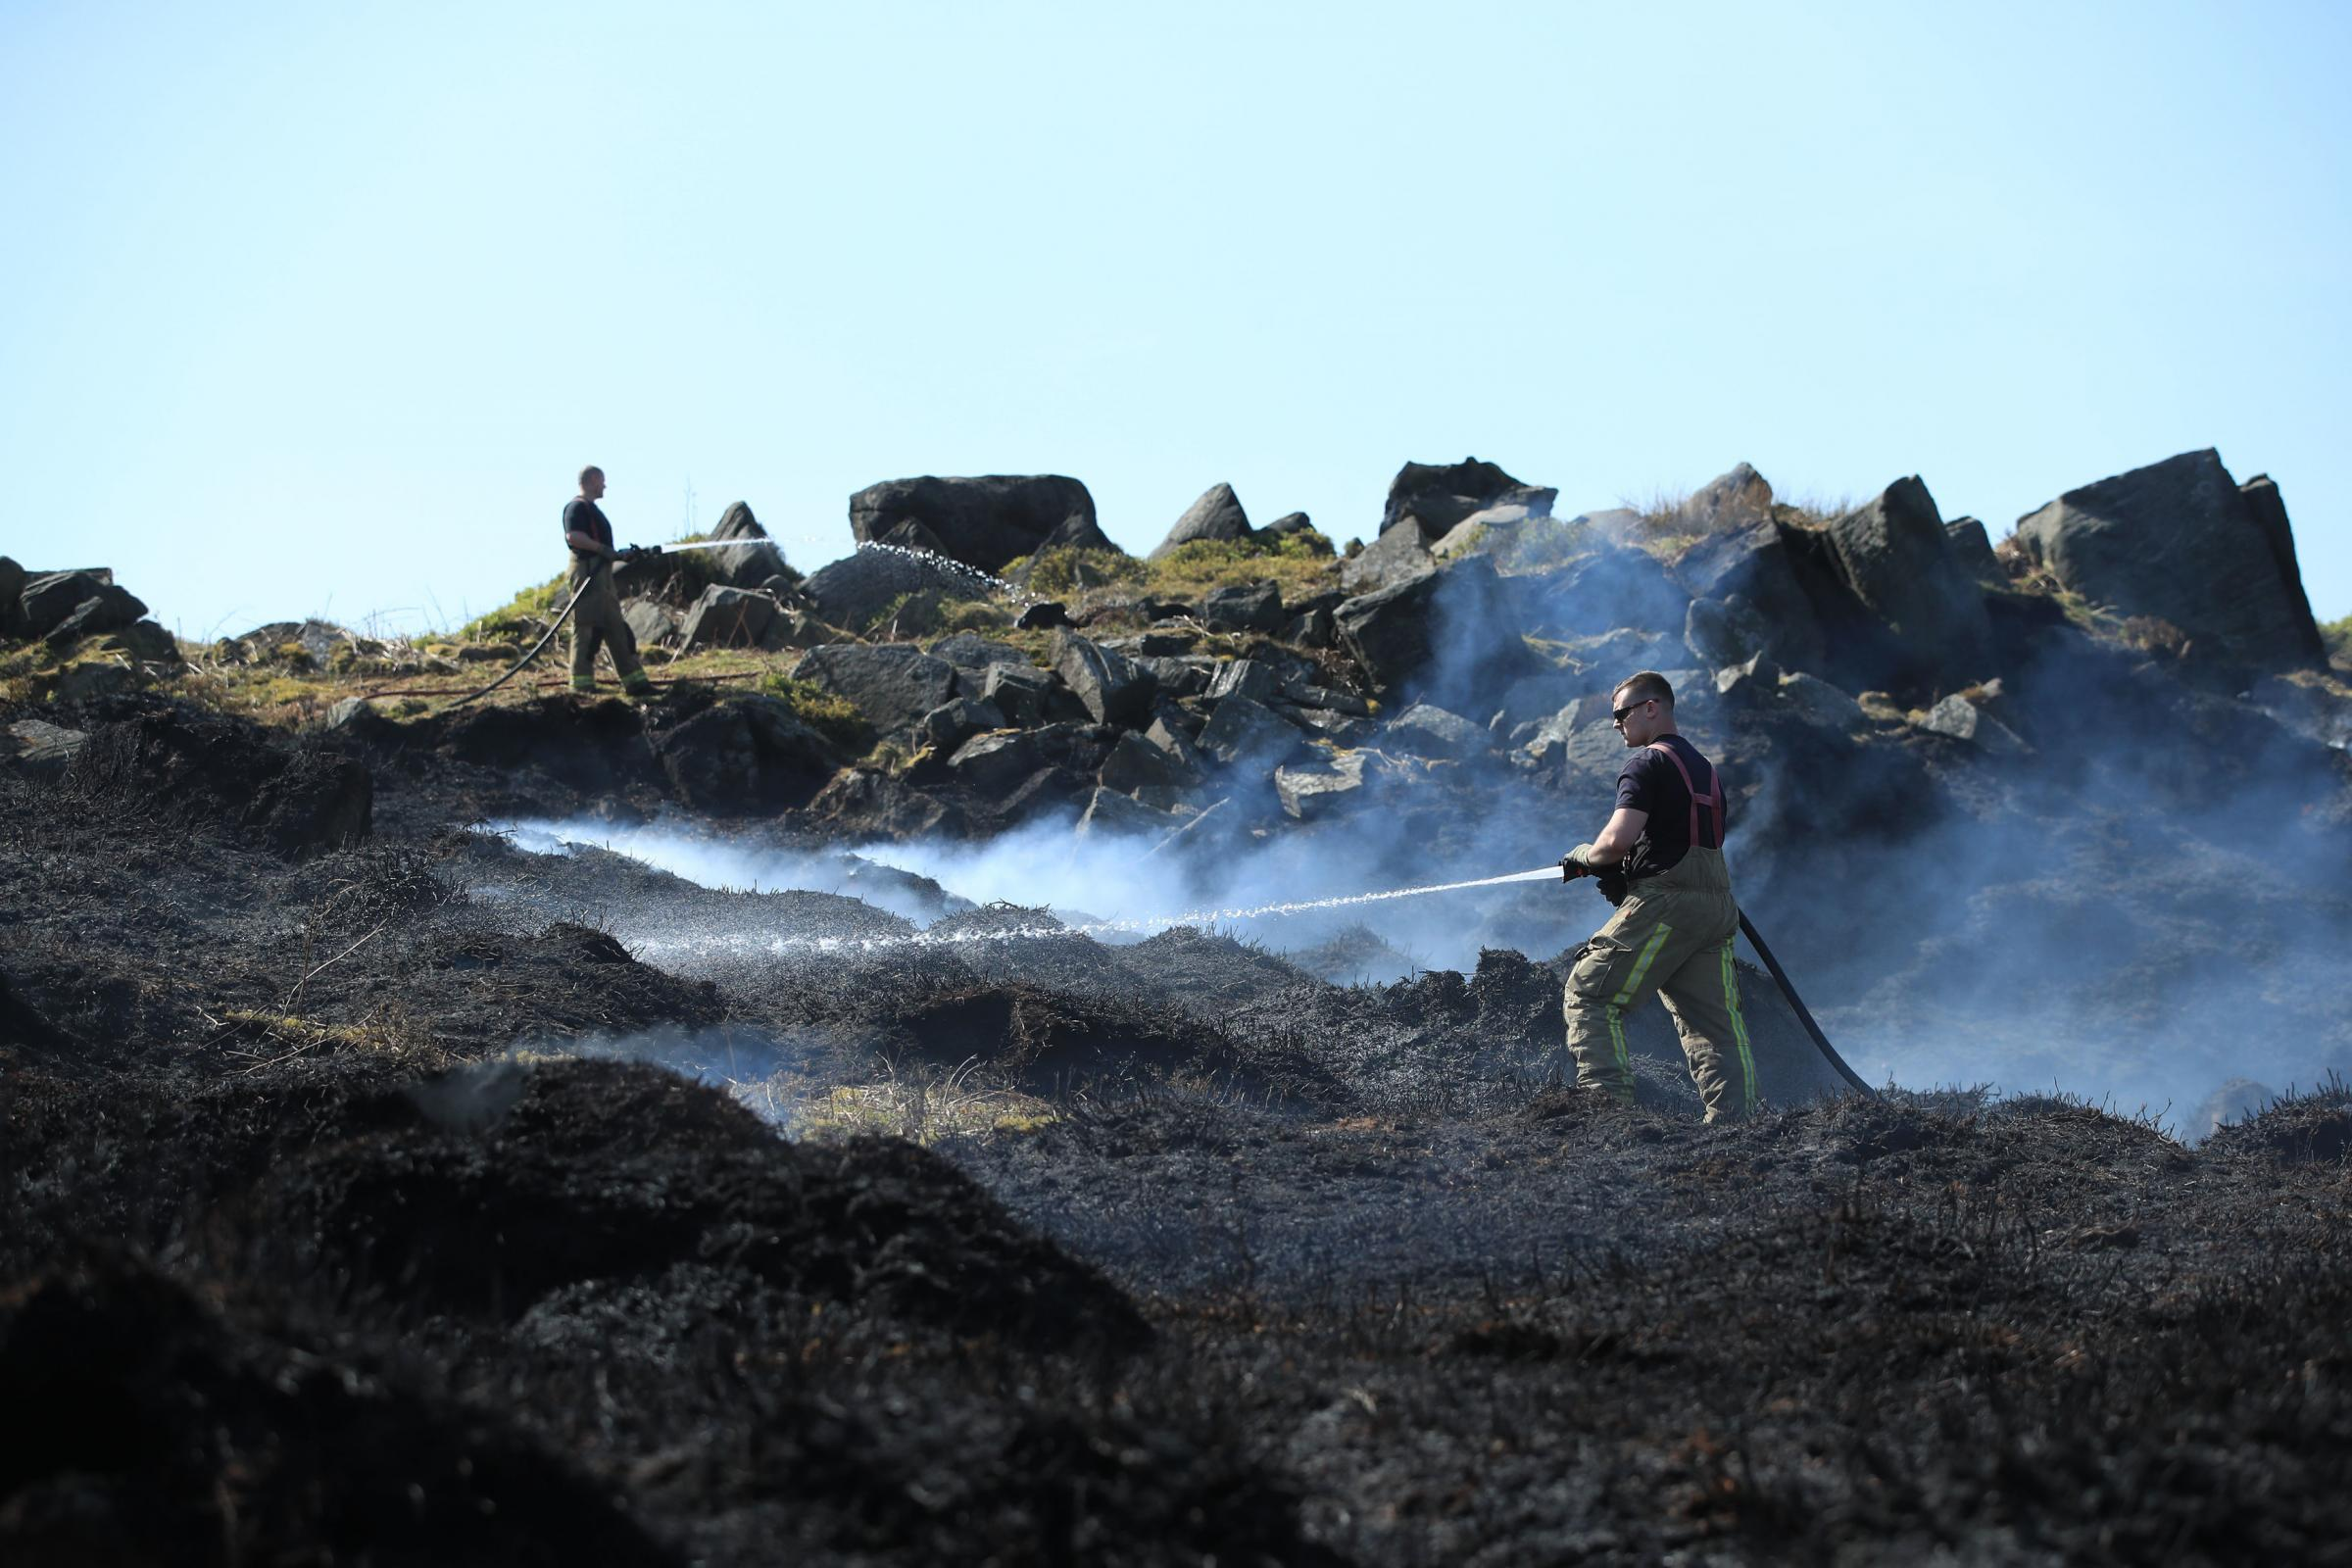 Three men arrested after Ilkley Moor fire, police confirm